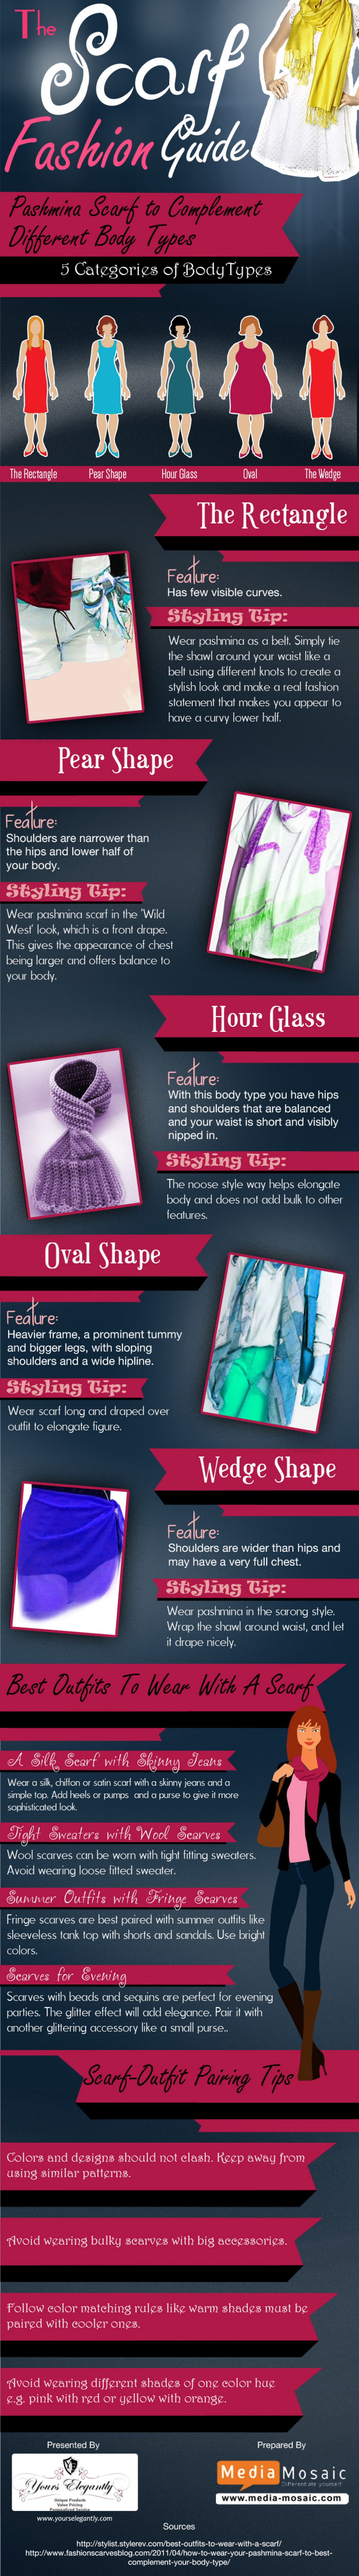 The Scarf Fashion Guide Infographic